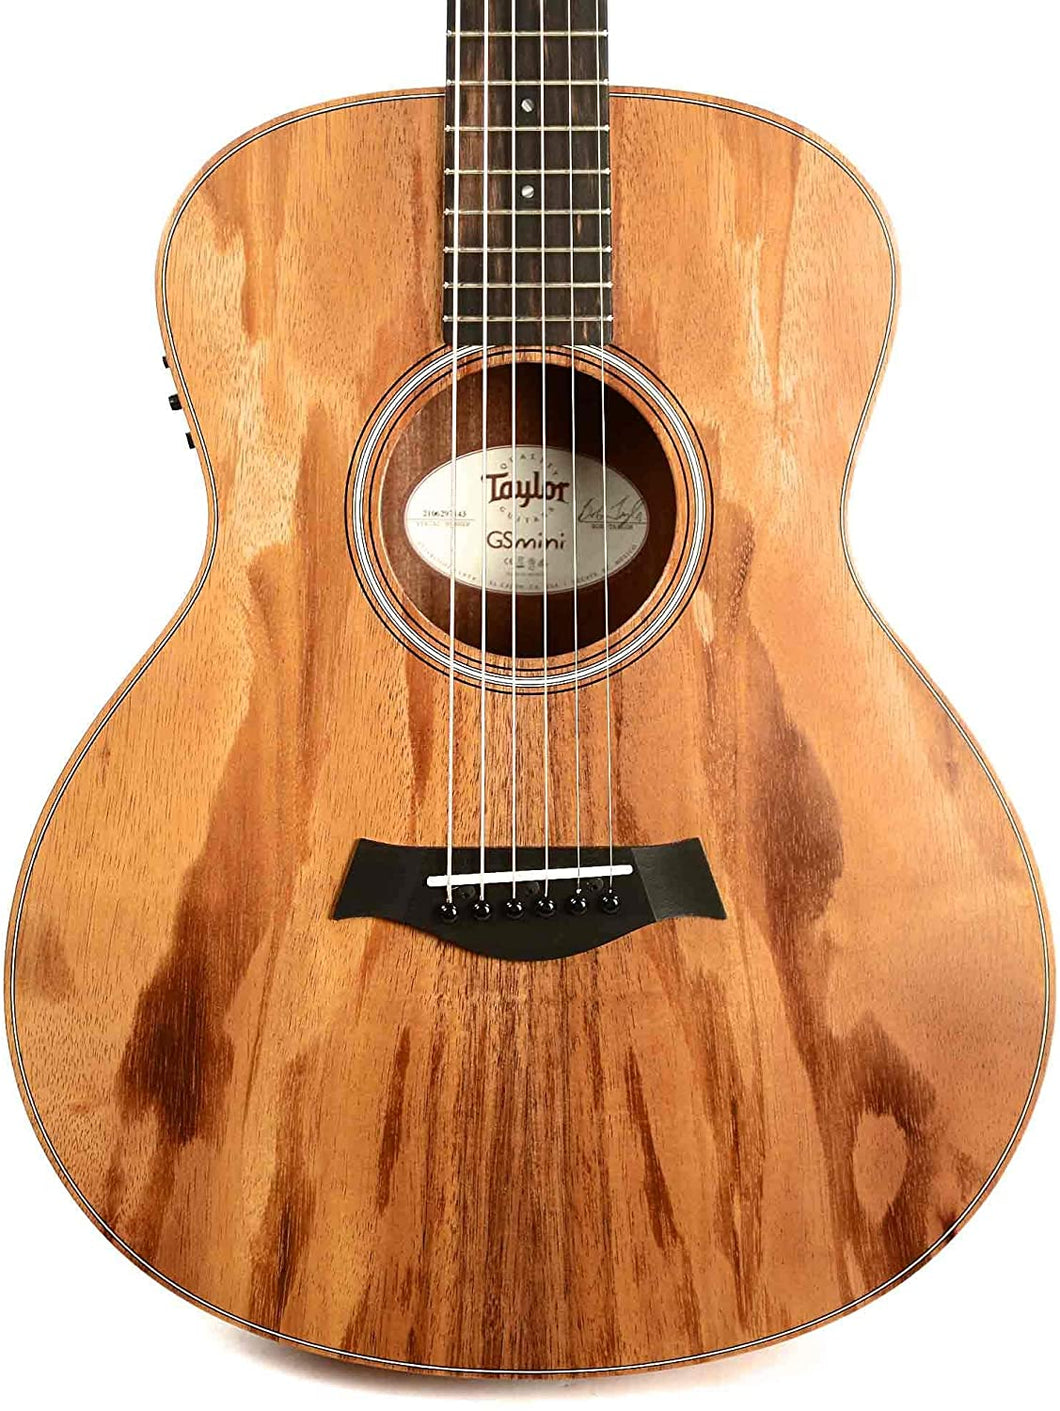 Taylor GS-Mini-e Koa Acoustic Electric Guitar with Hard Bag